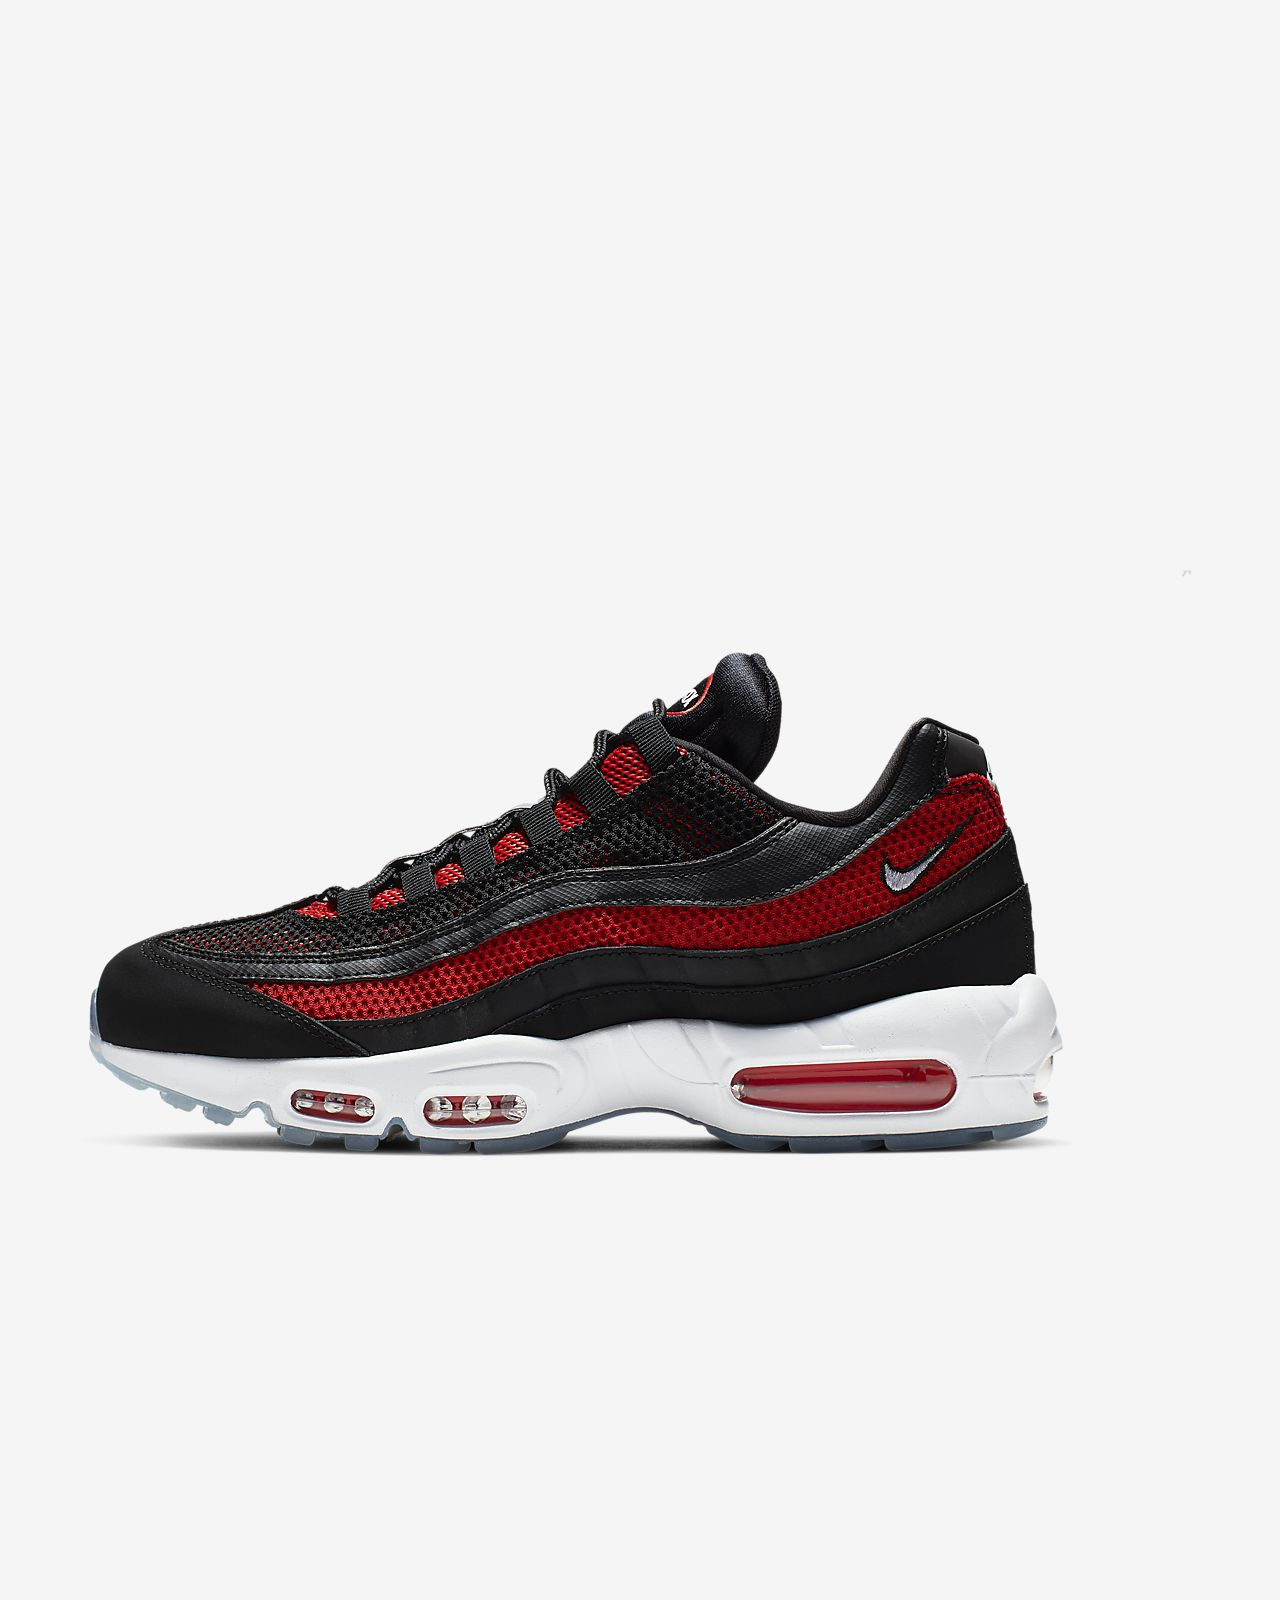 wholesale dealer d7e32 c7719 ... Chaussure Nike Air Max 95 Essential pour Homme